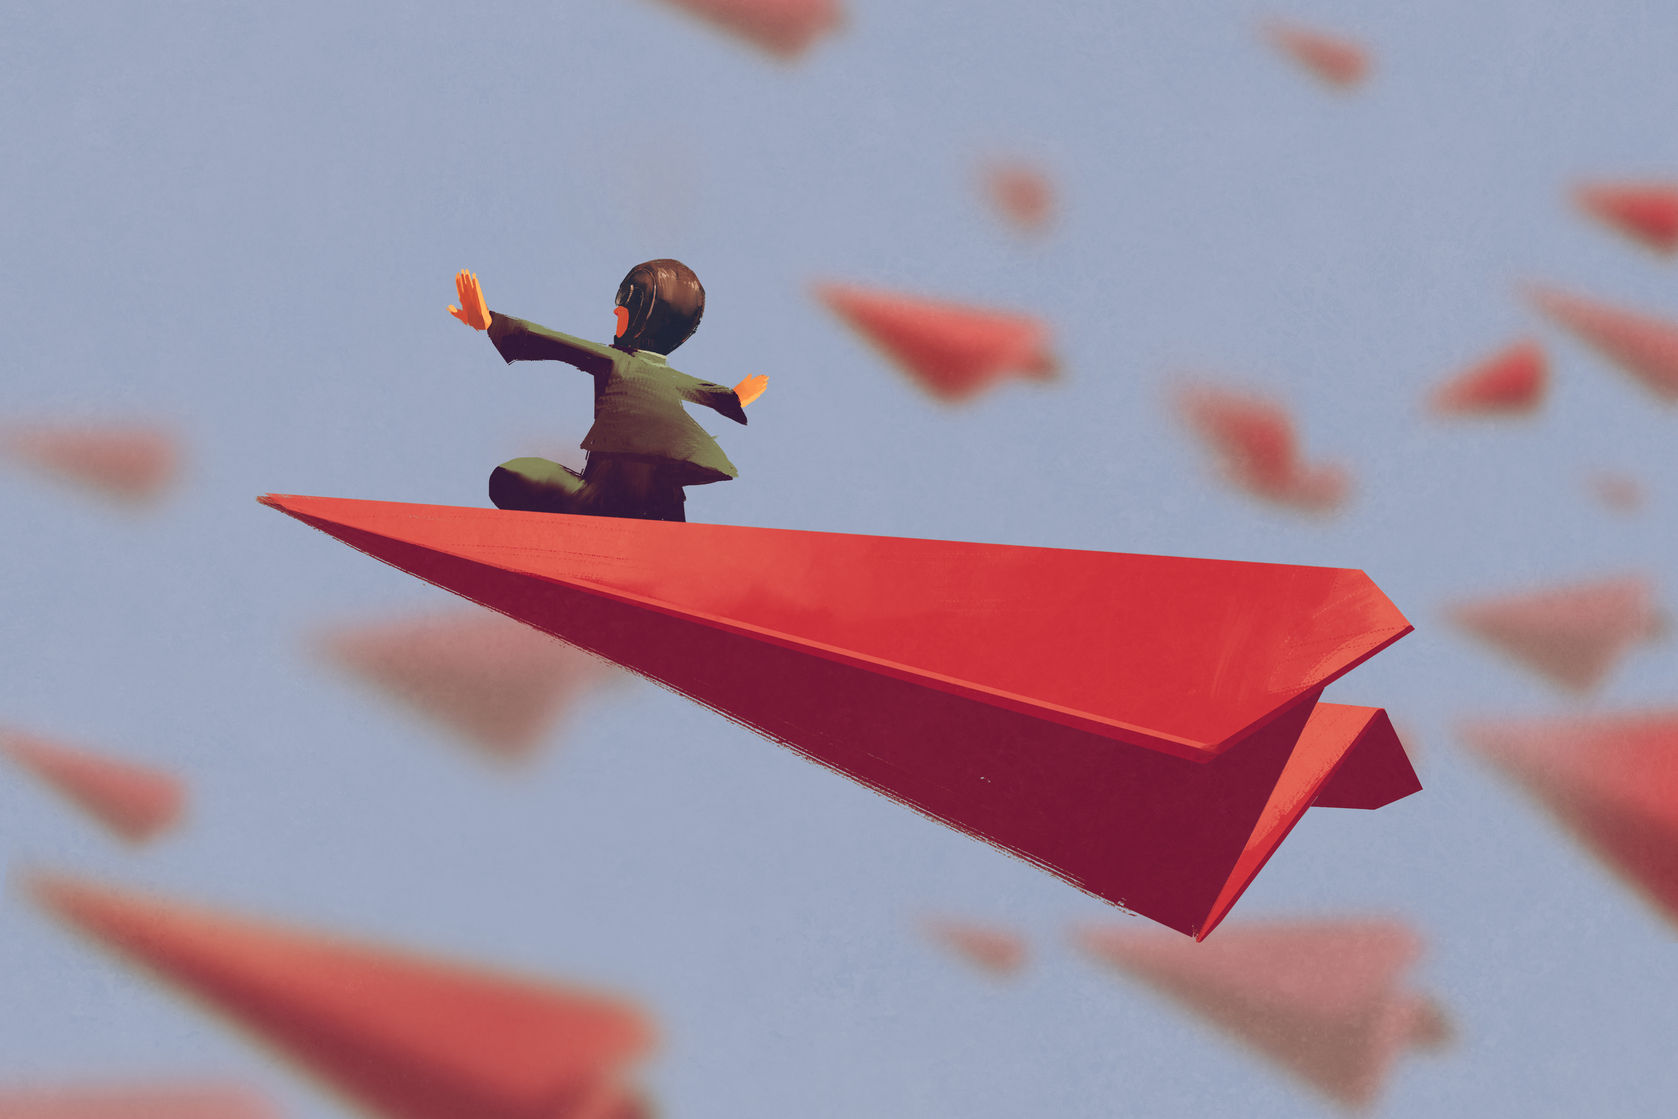 60871747 - man sitting on red airplane paper in the sky,illustration painting